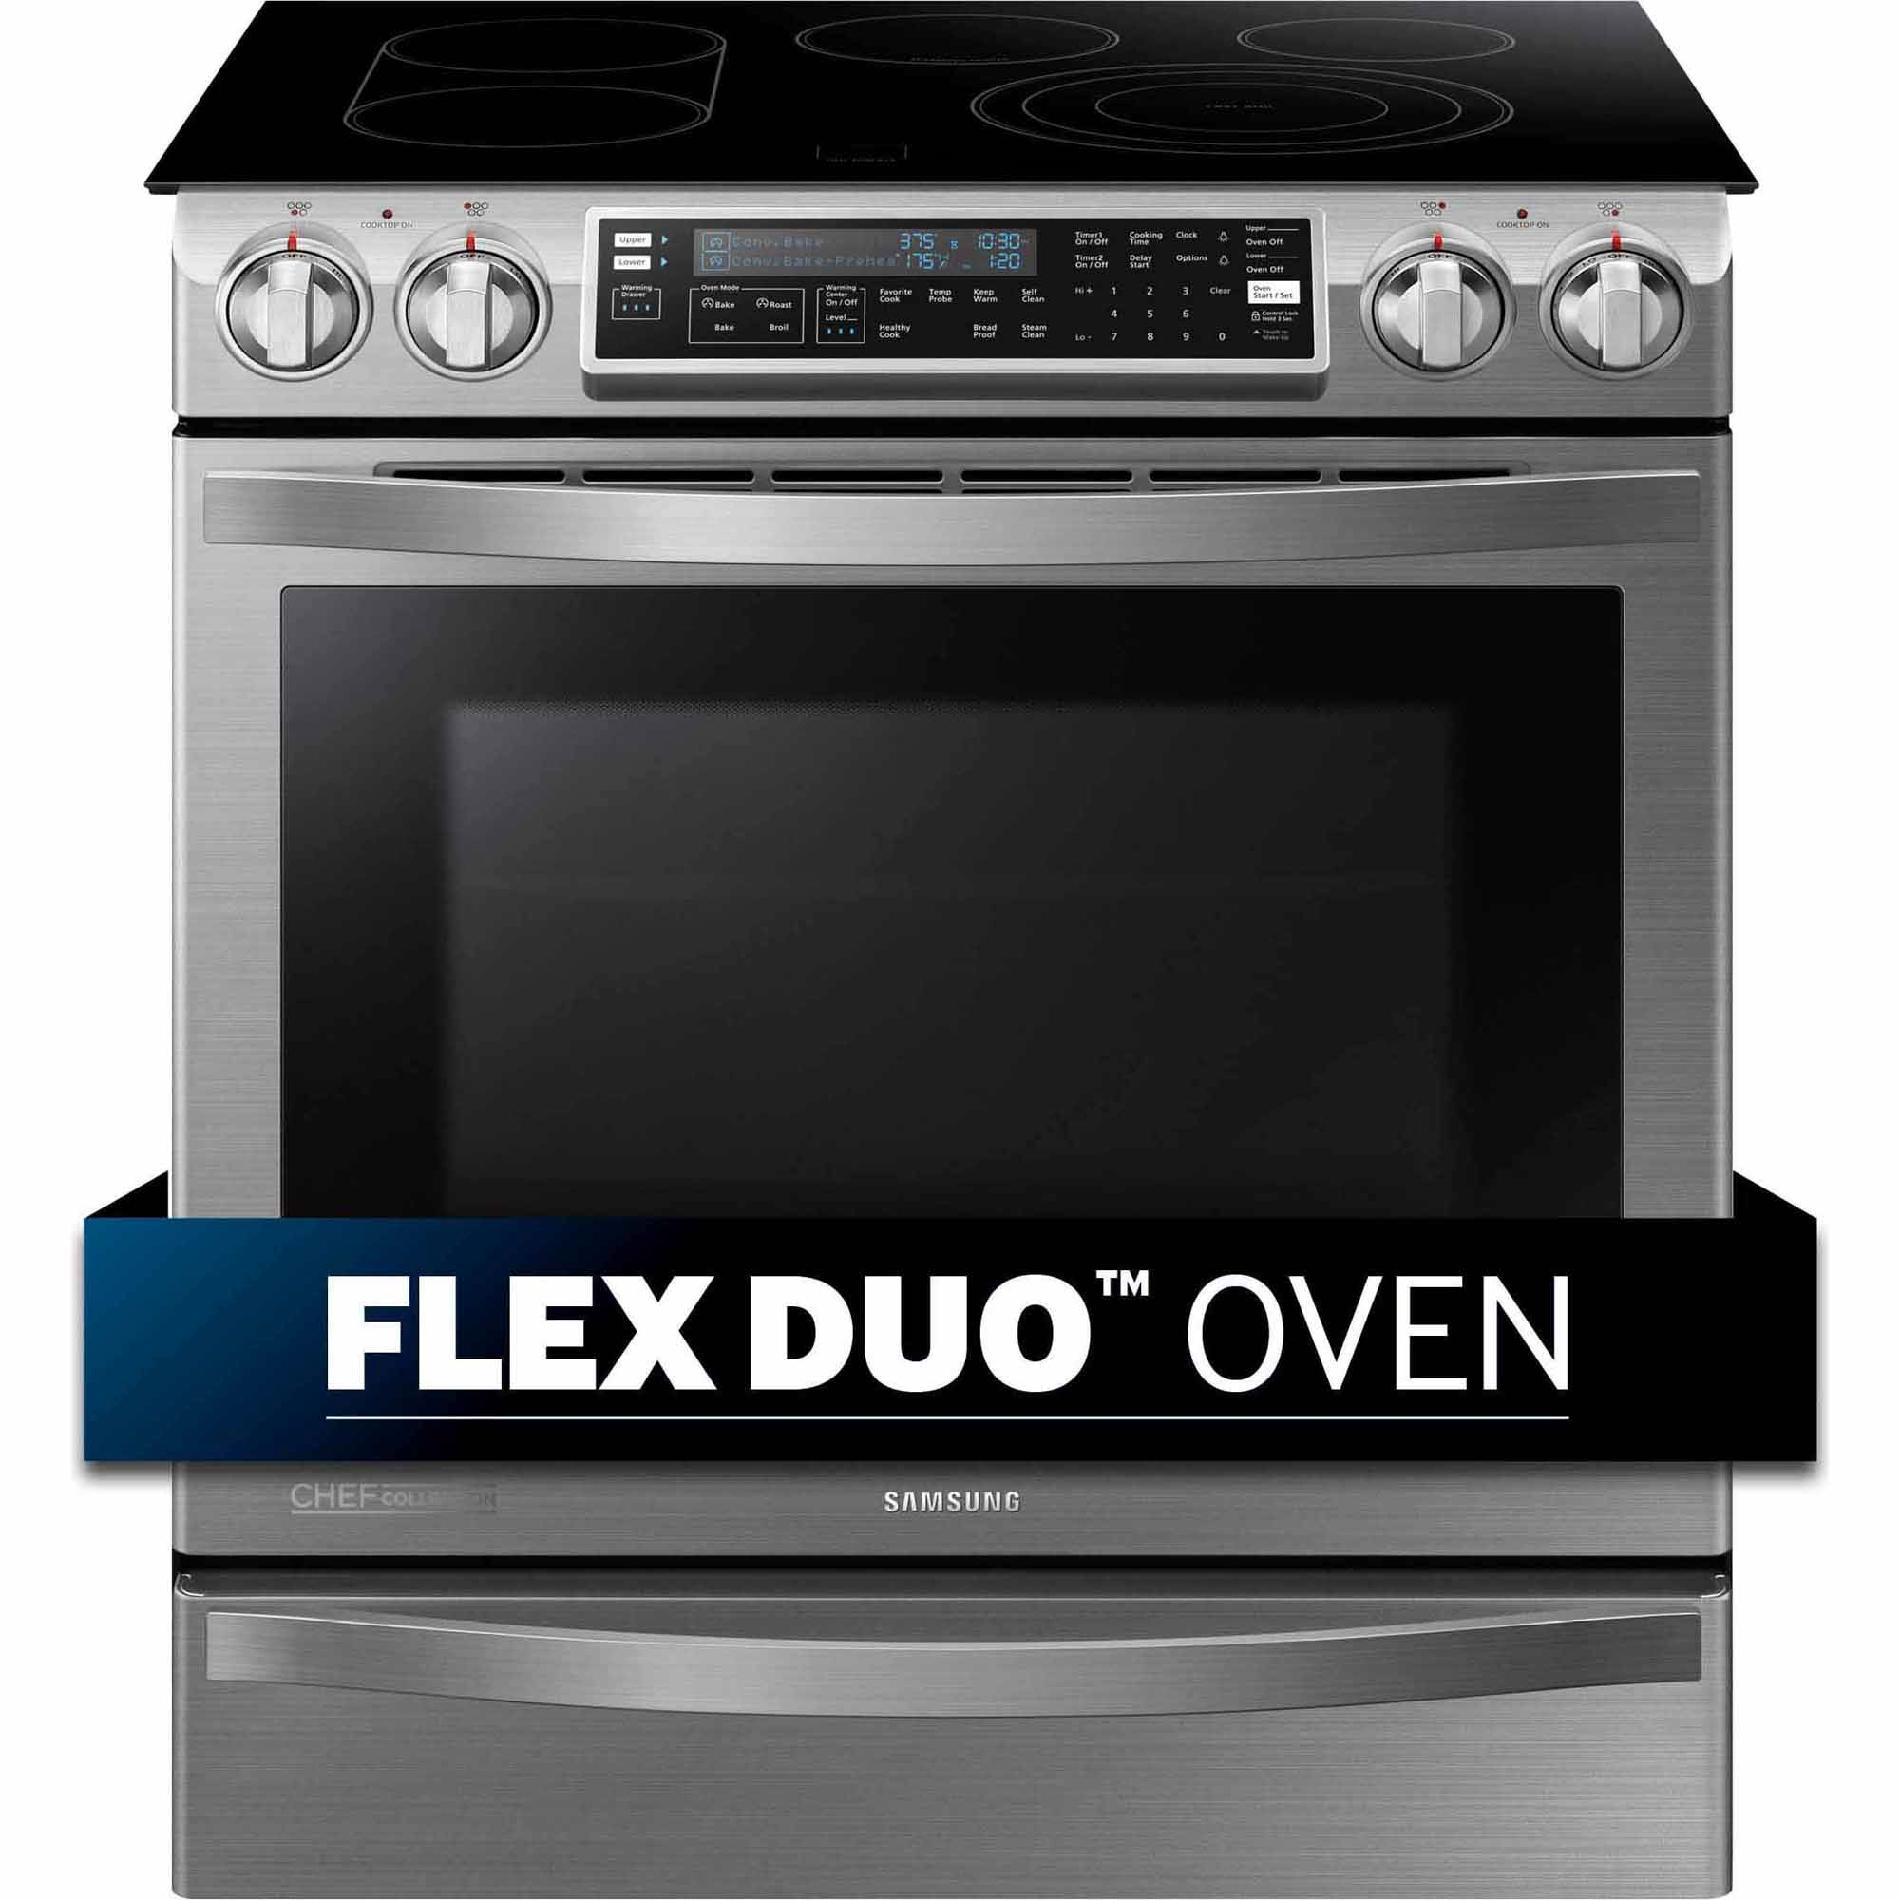 Samsung NE58H9950WS 5.8 cu. ft. Slide-In Electric Chef Collection Range w/ Flex Duo Oven - Stainless Steel